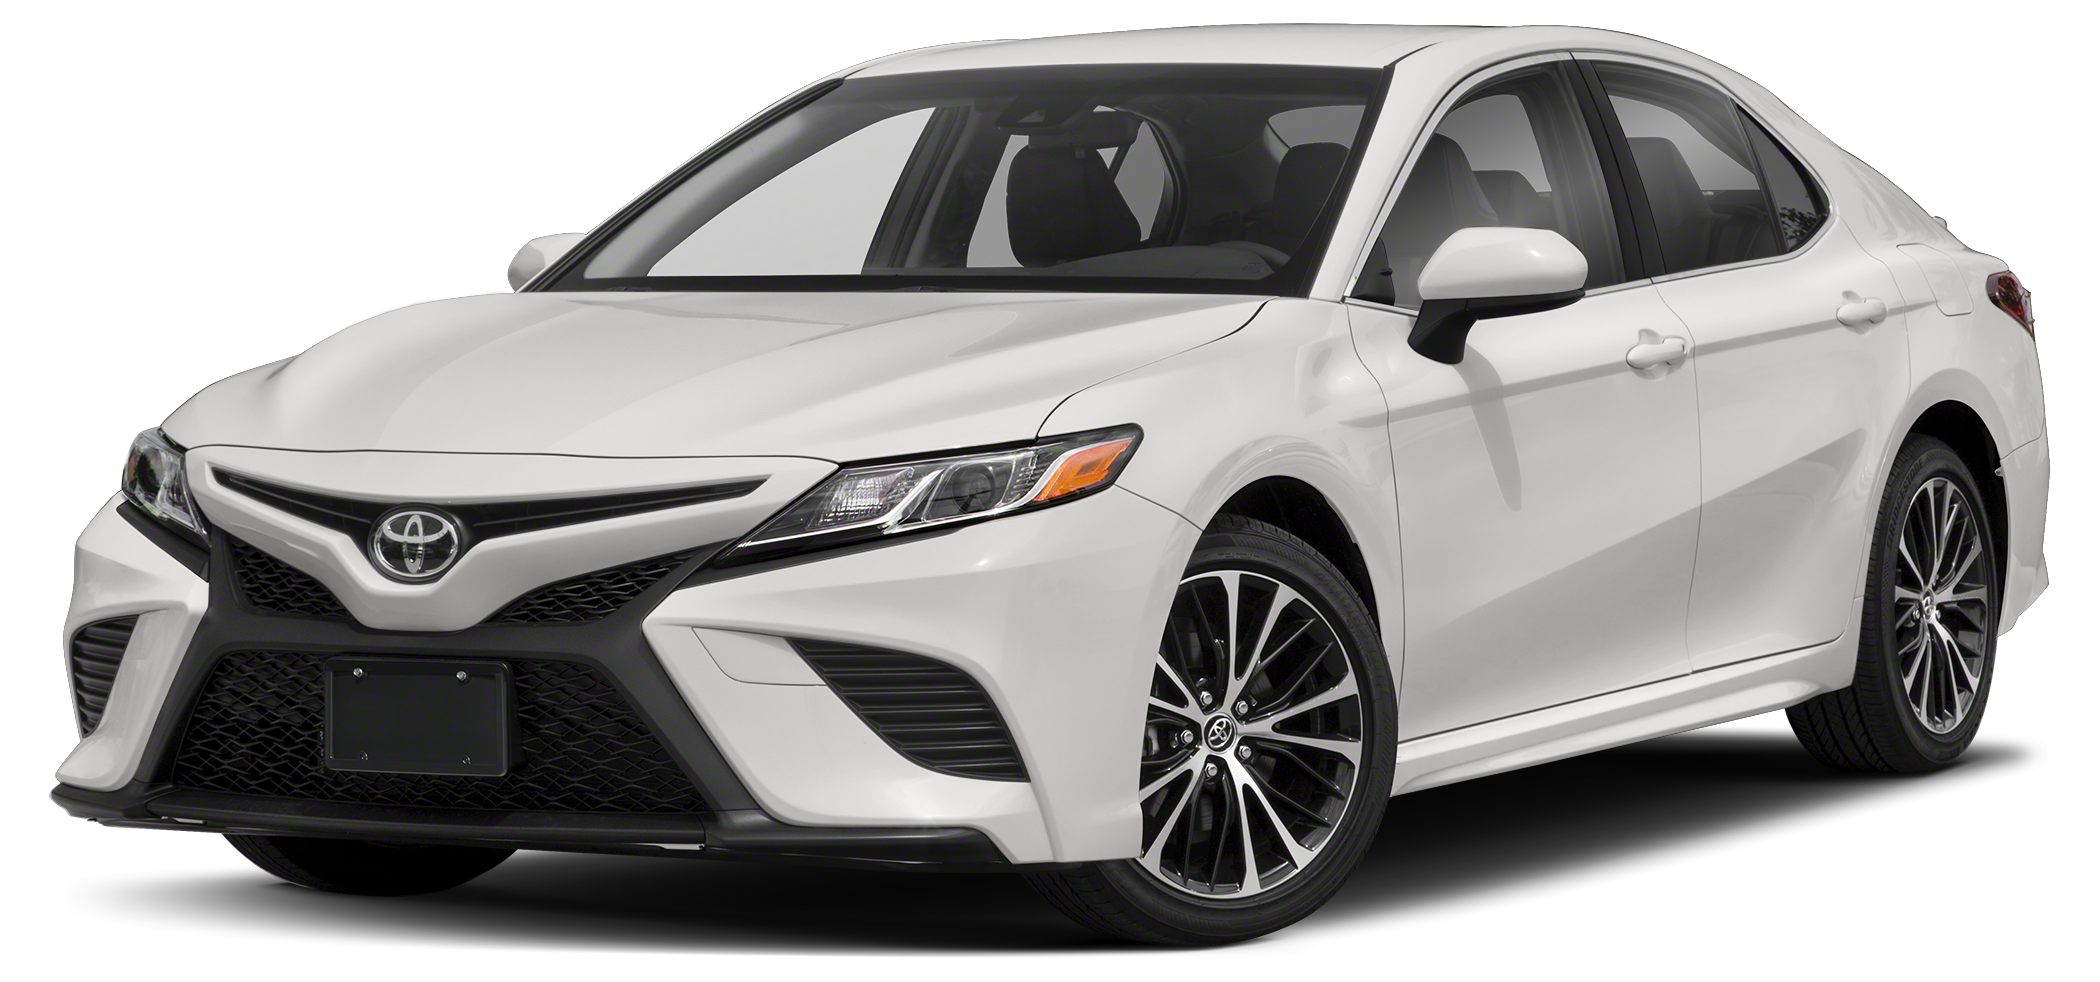 2018 Toyota Camry SE Westboro Toyota is proud to present HASSLE FREE BUYING EXPERIENCE with upfron